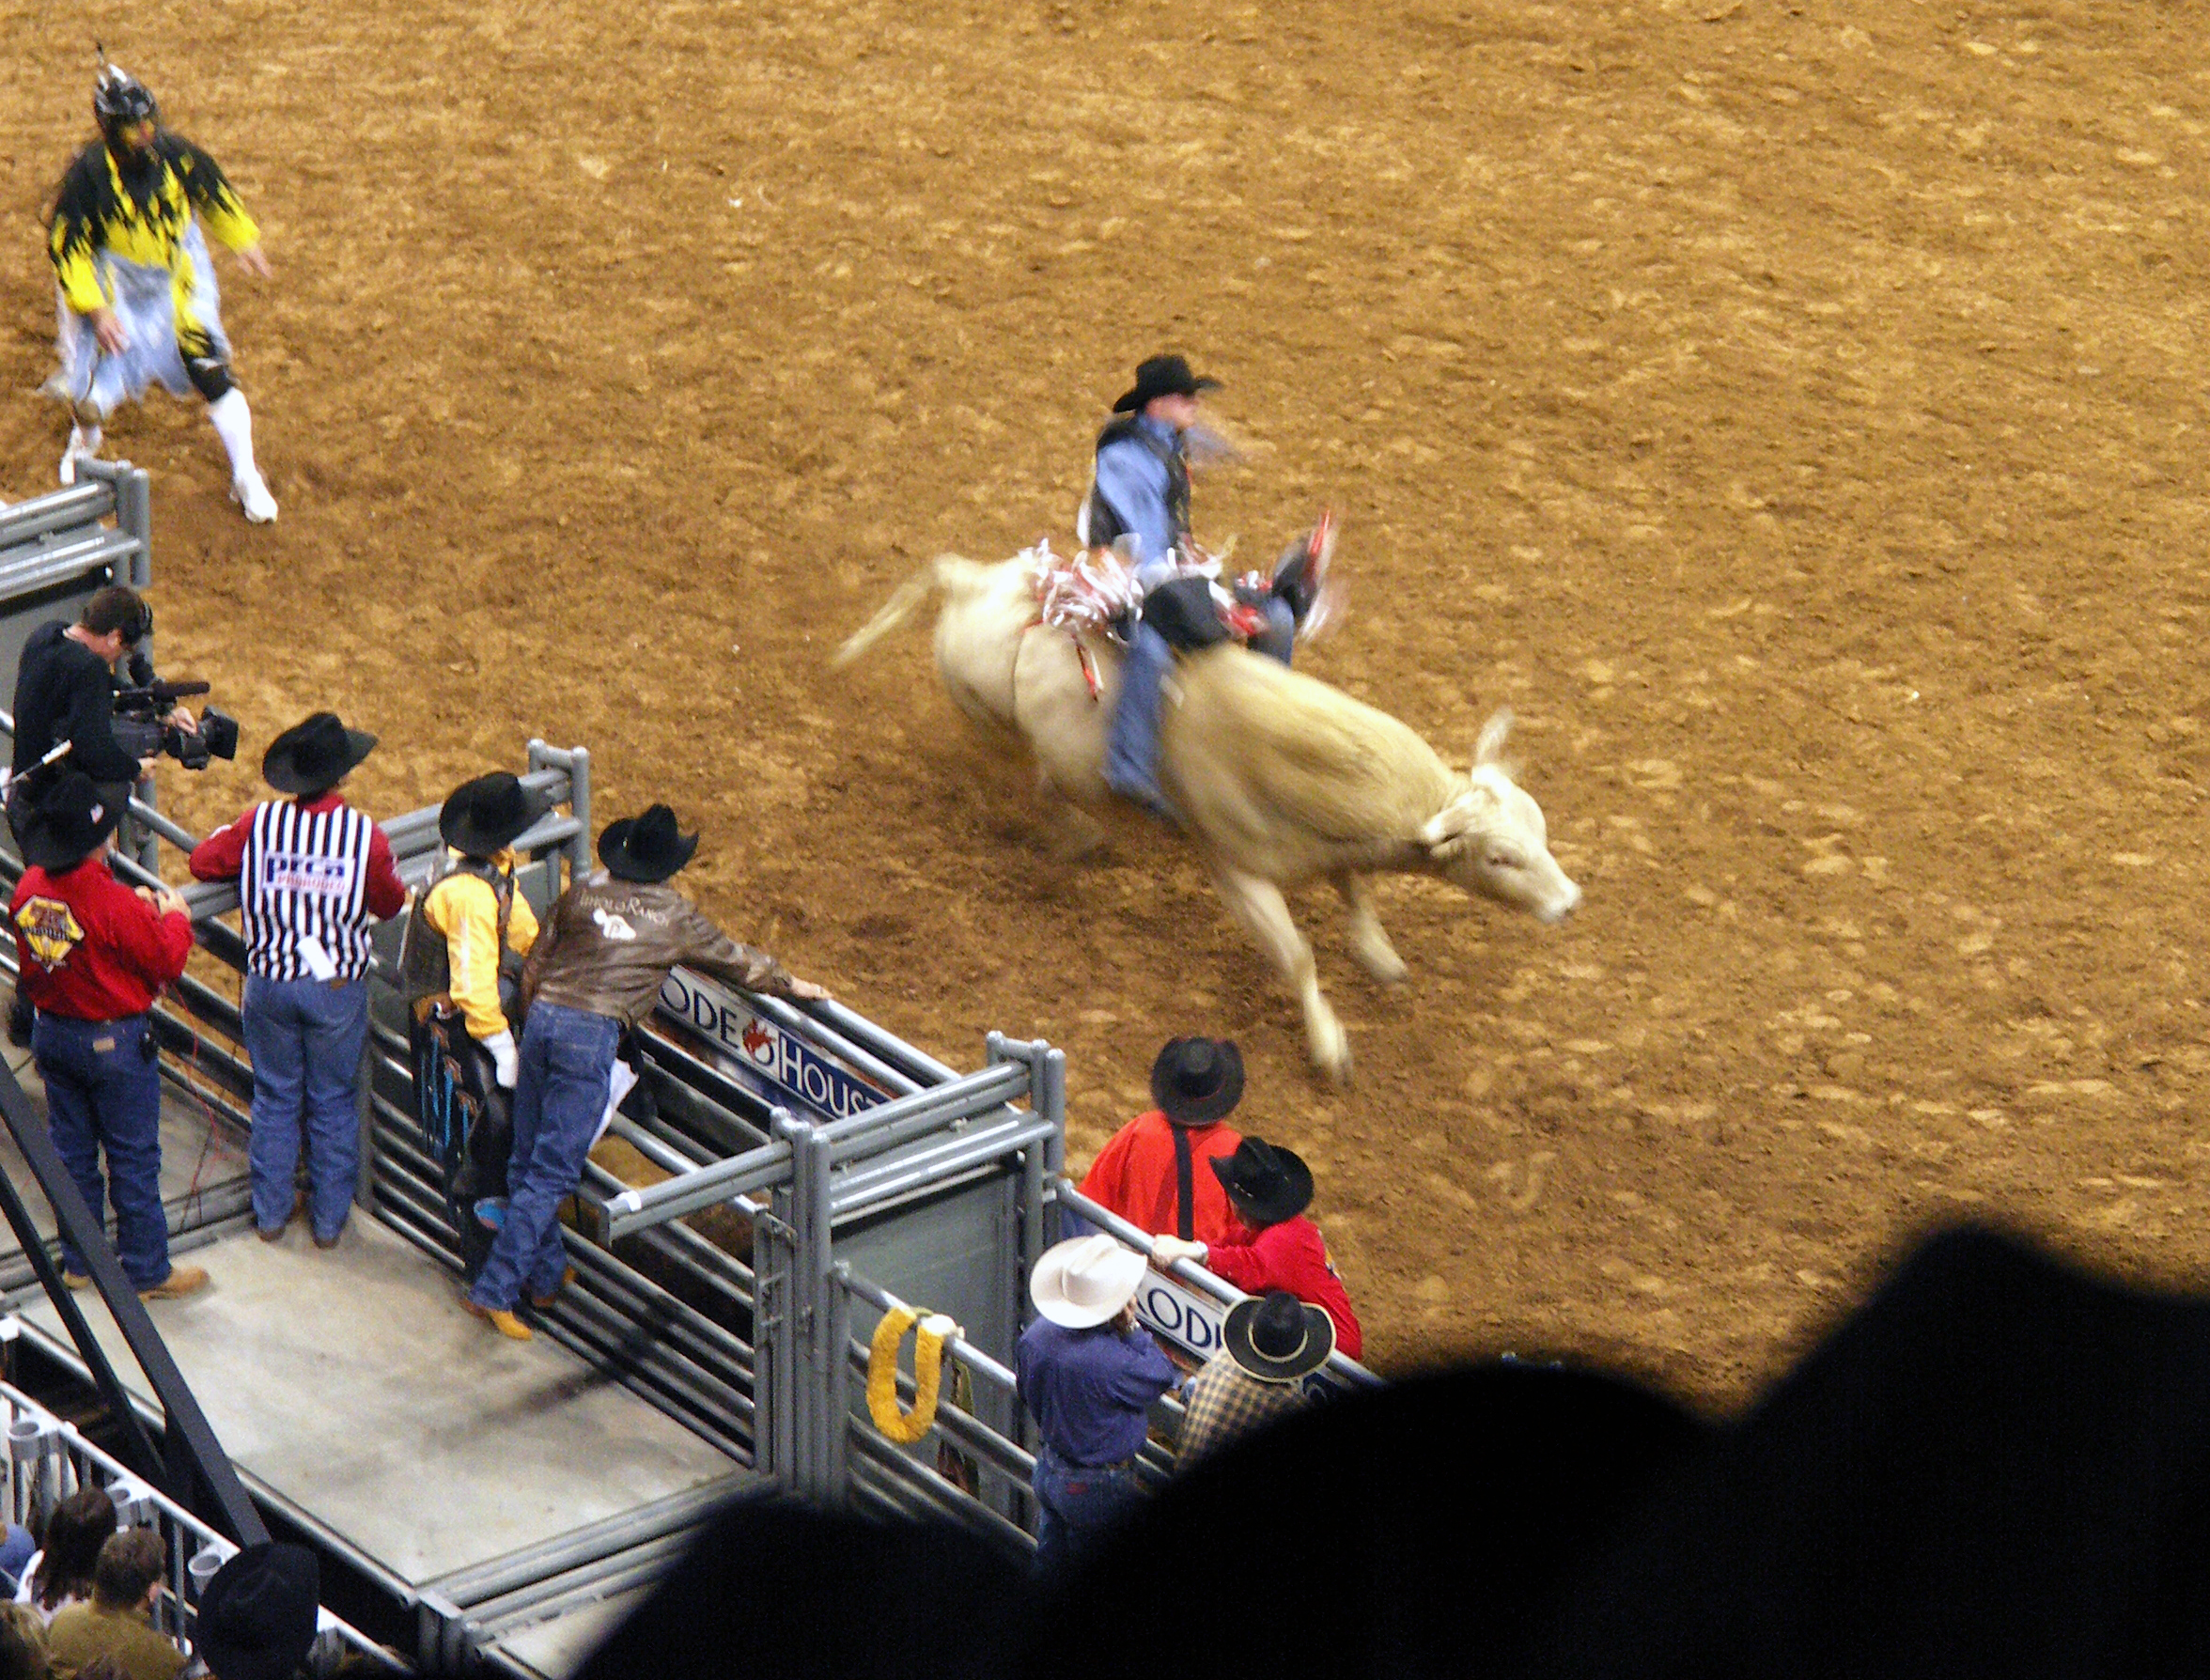 Houston Livestock Sow and Rodeo, Texas